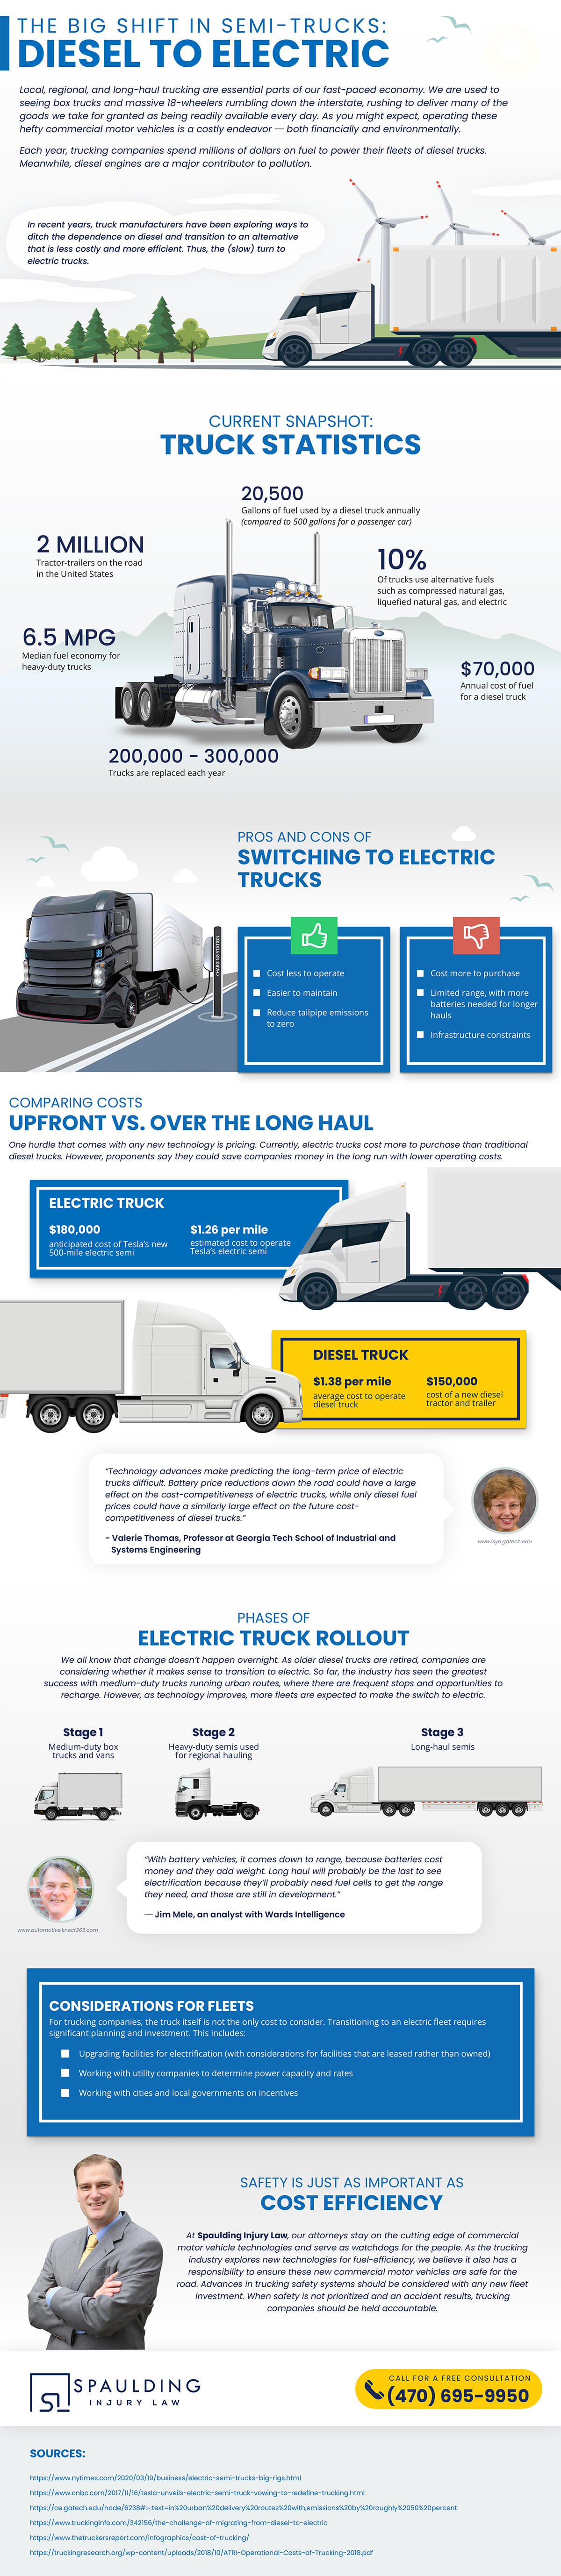 Spaulding Injury Law - The Future of Big Rig Semi-trucks: Diesel Vs. Electric - Infographic